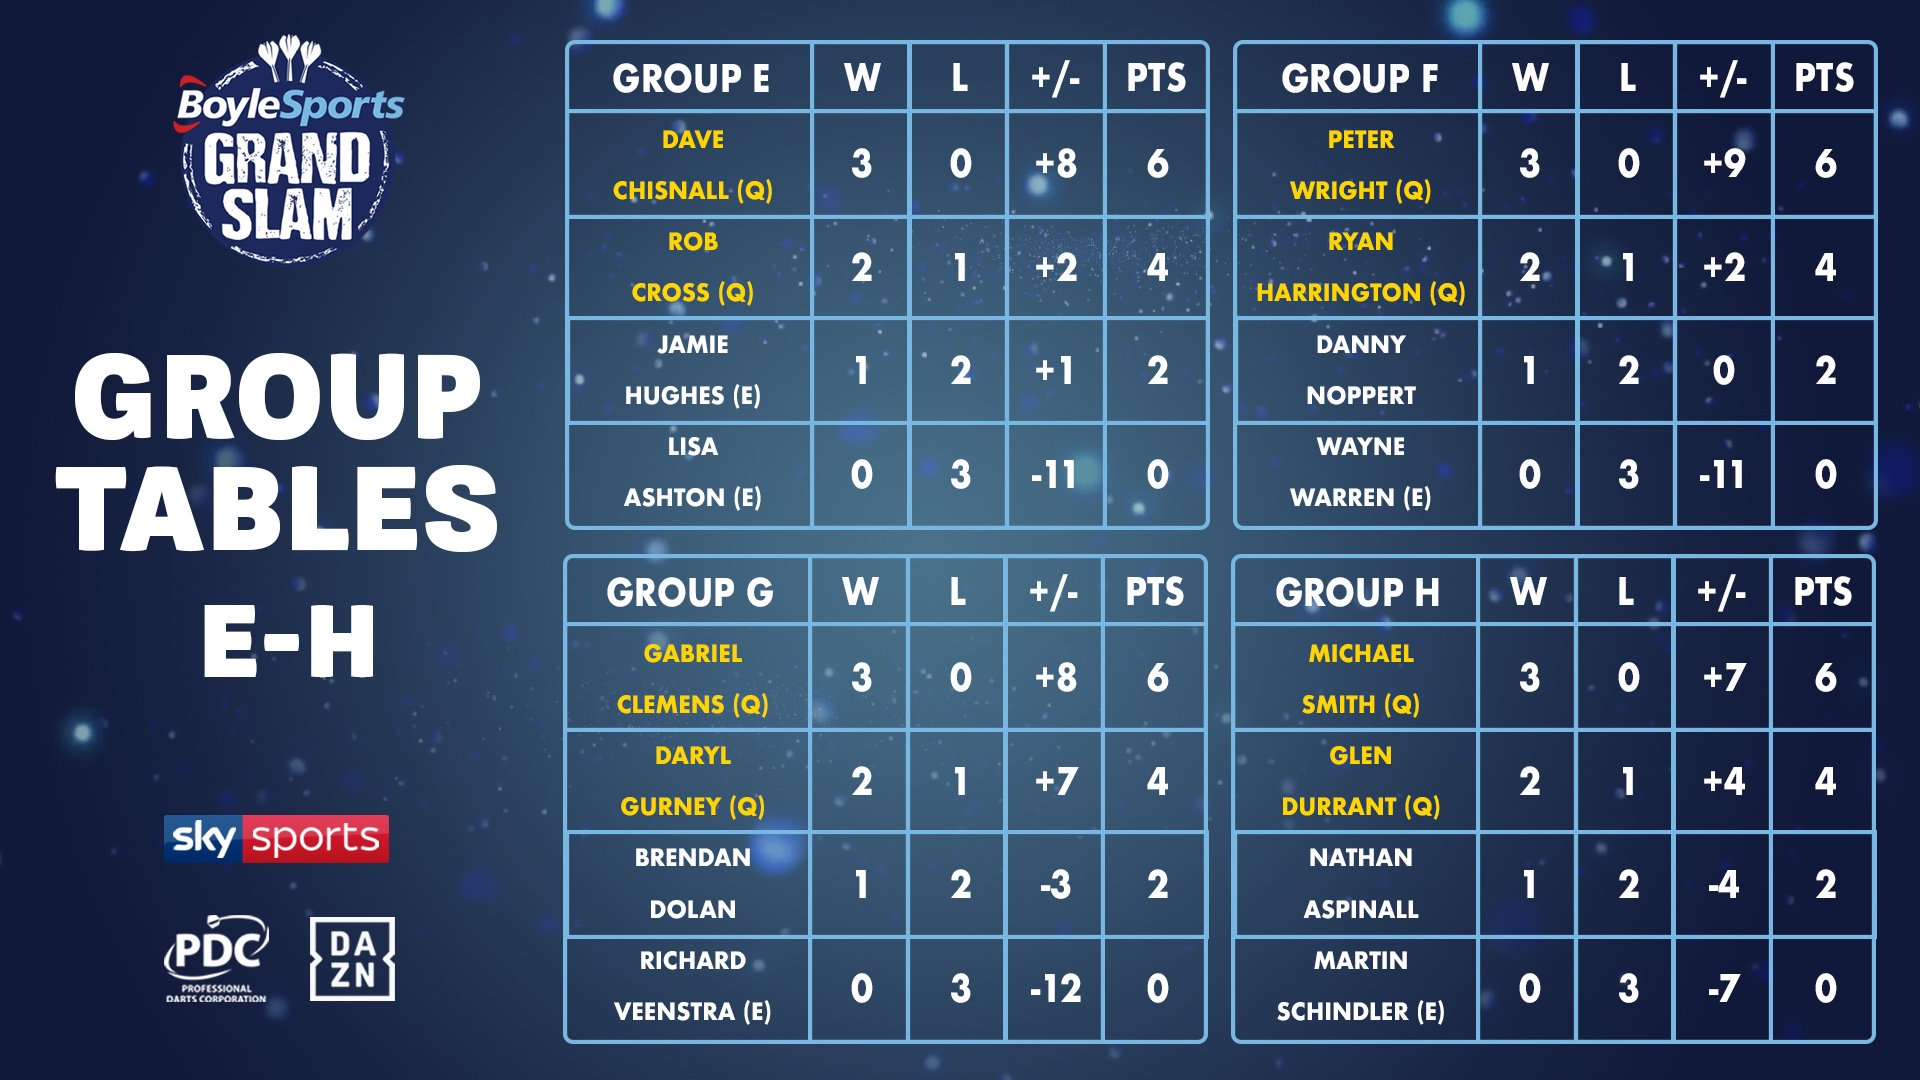 Grand Slam of Darts Groups E-H final tables (PDC)